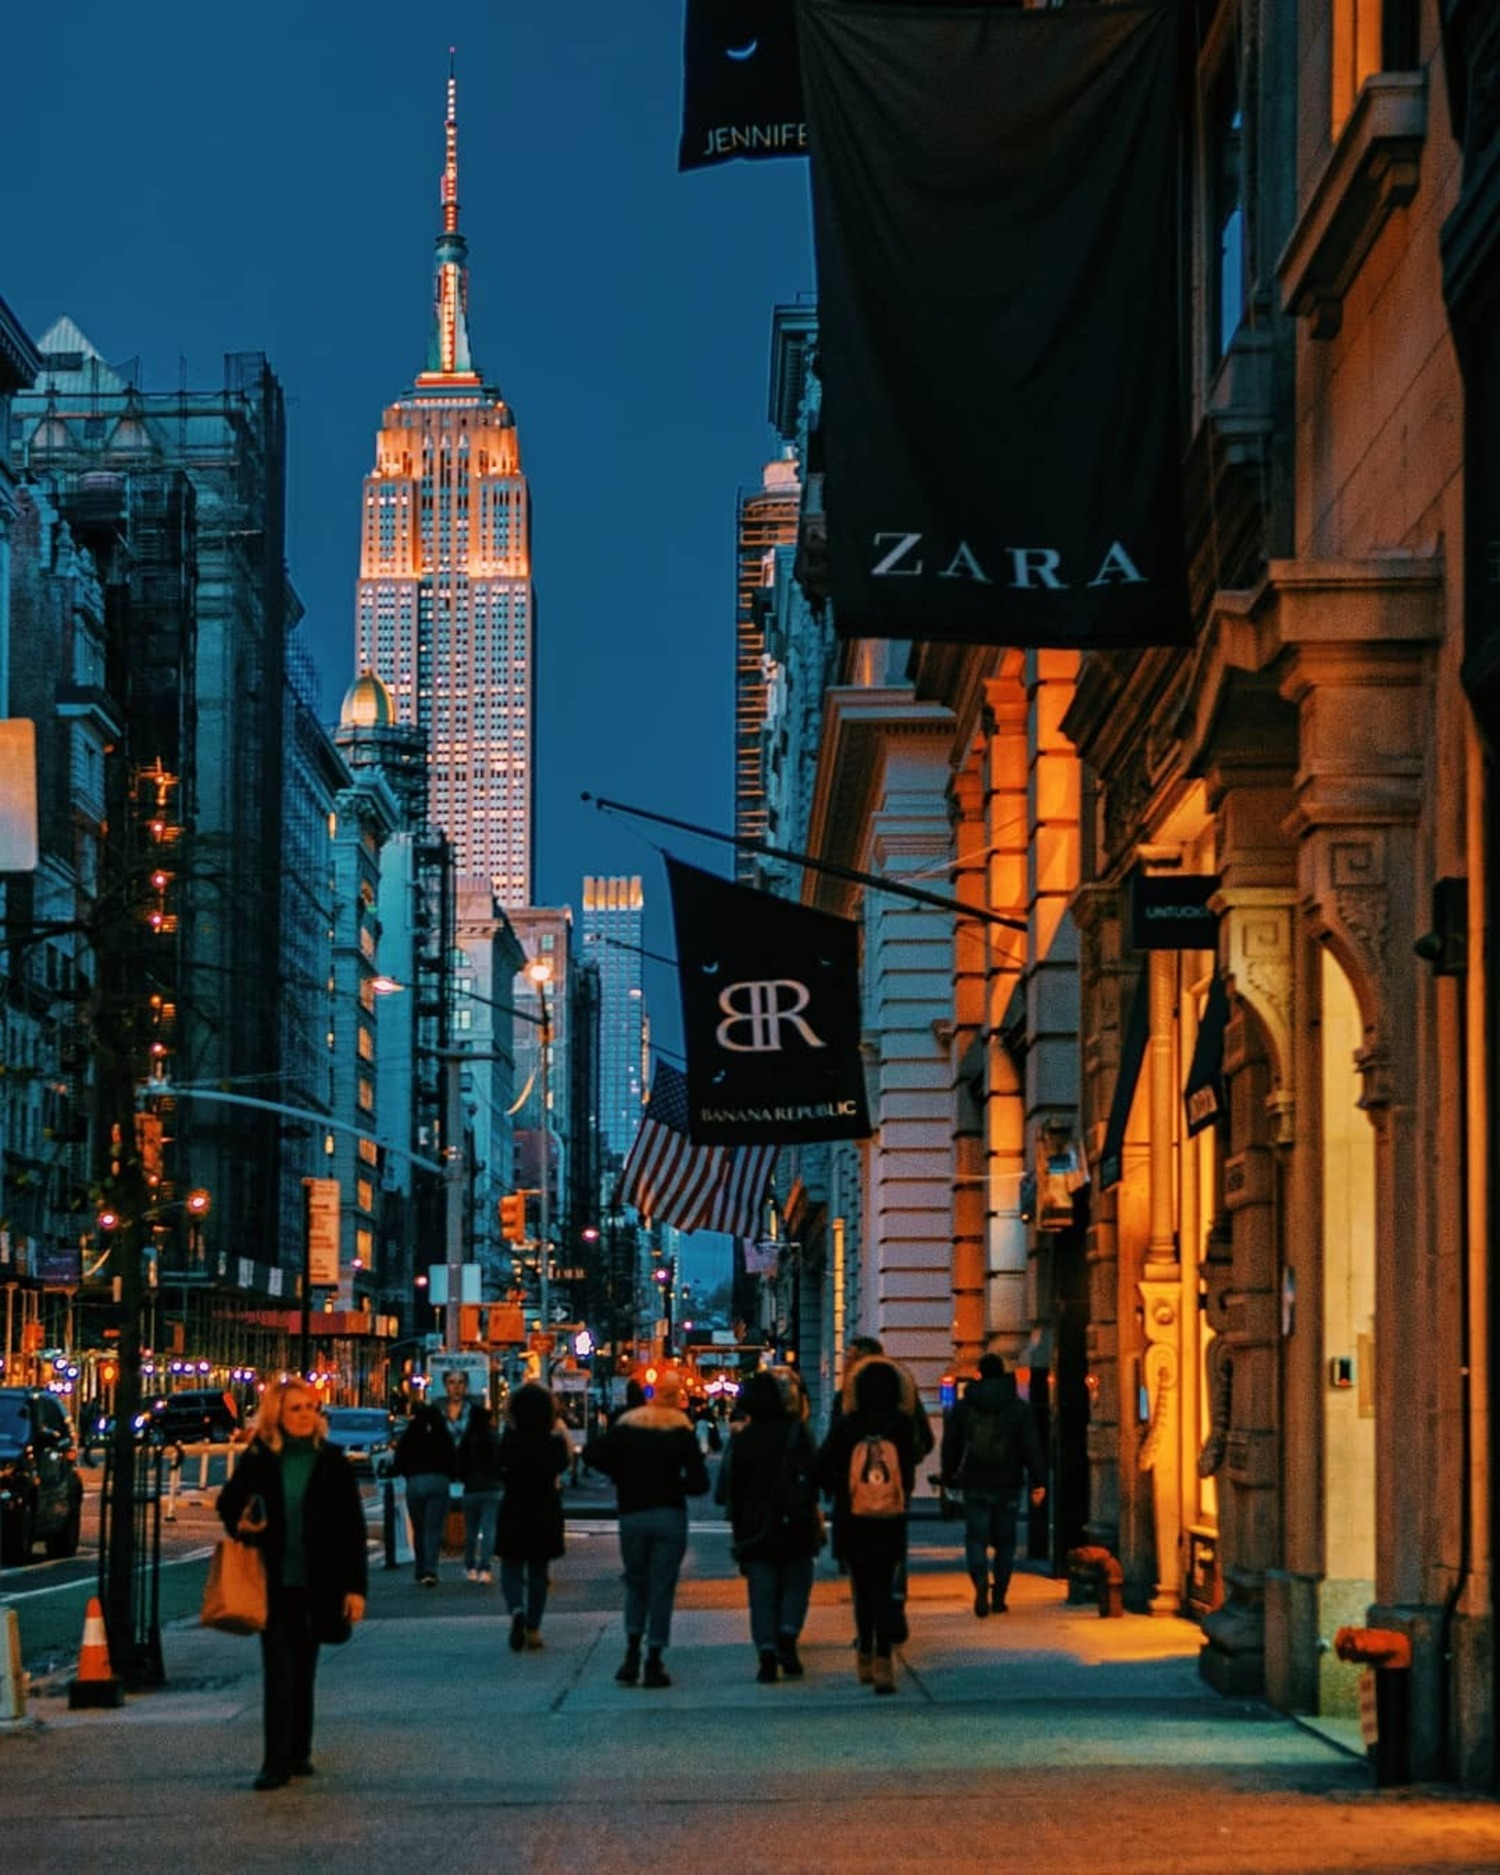 5th Avenue, Flatiron District, Manhattan